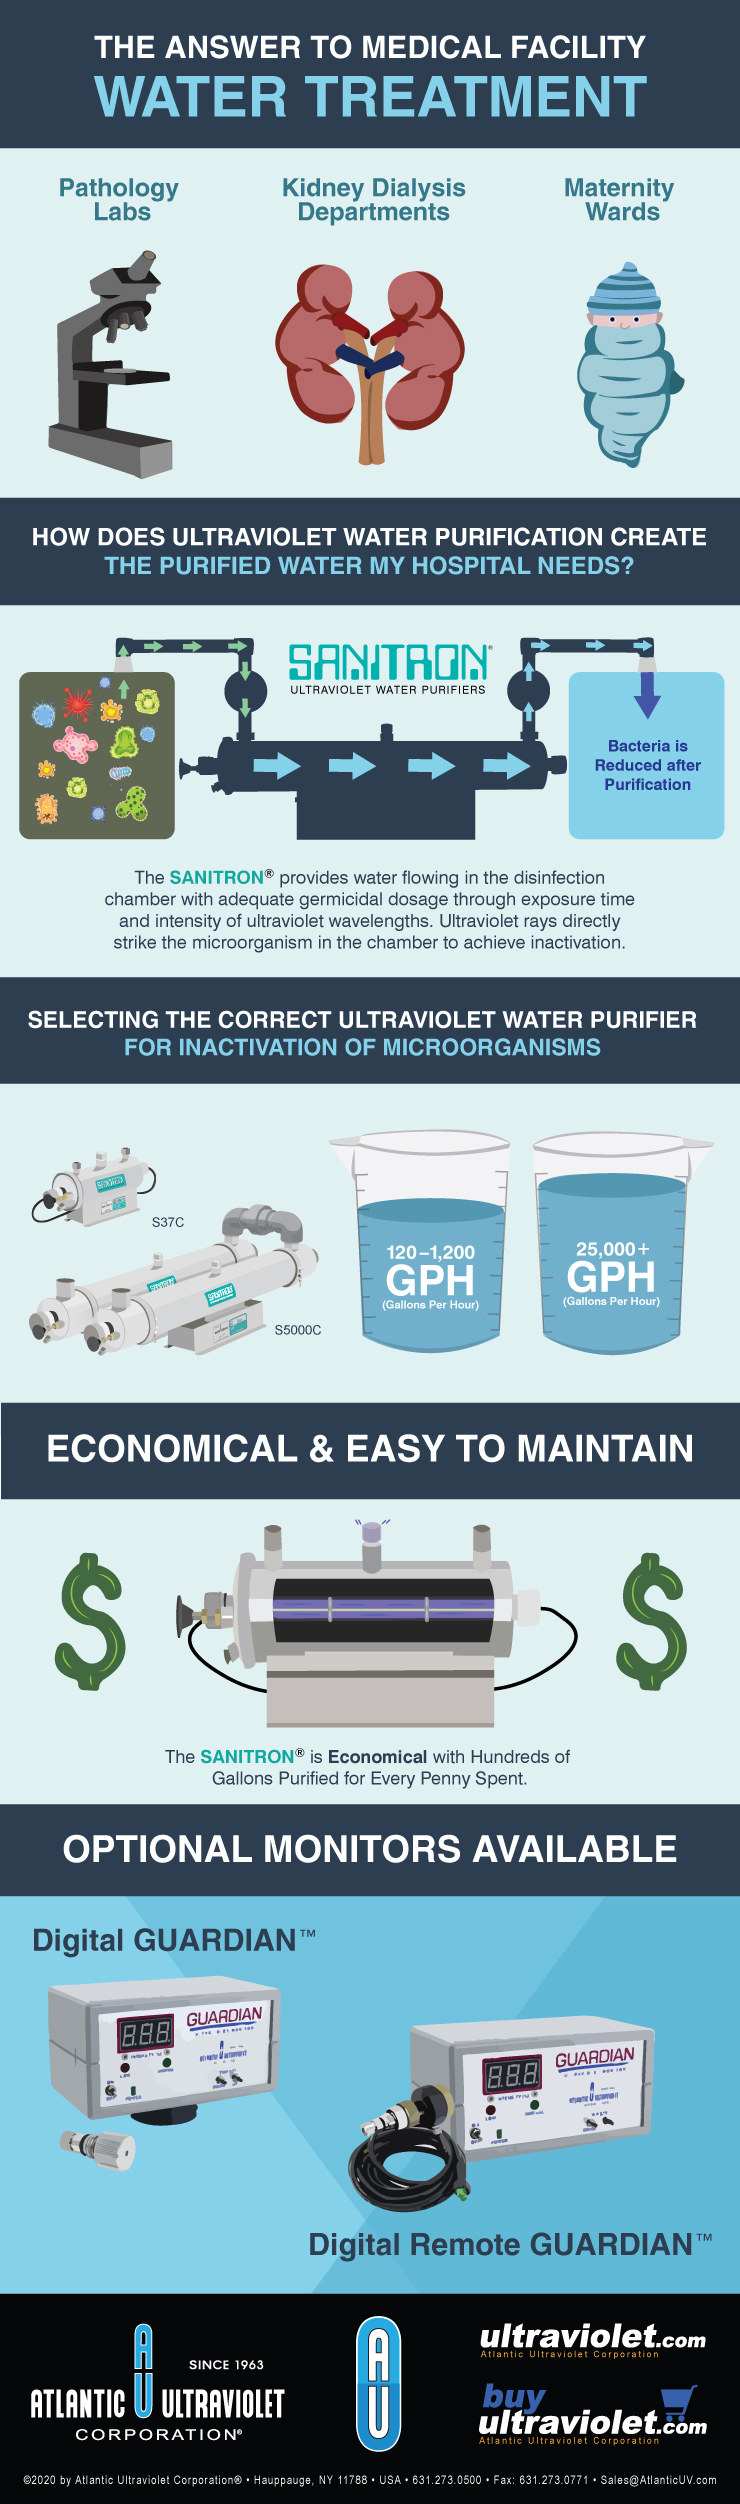 Infographic: The Answer to Medical Facility Water Treatment